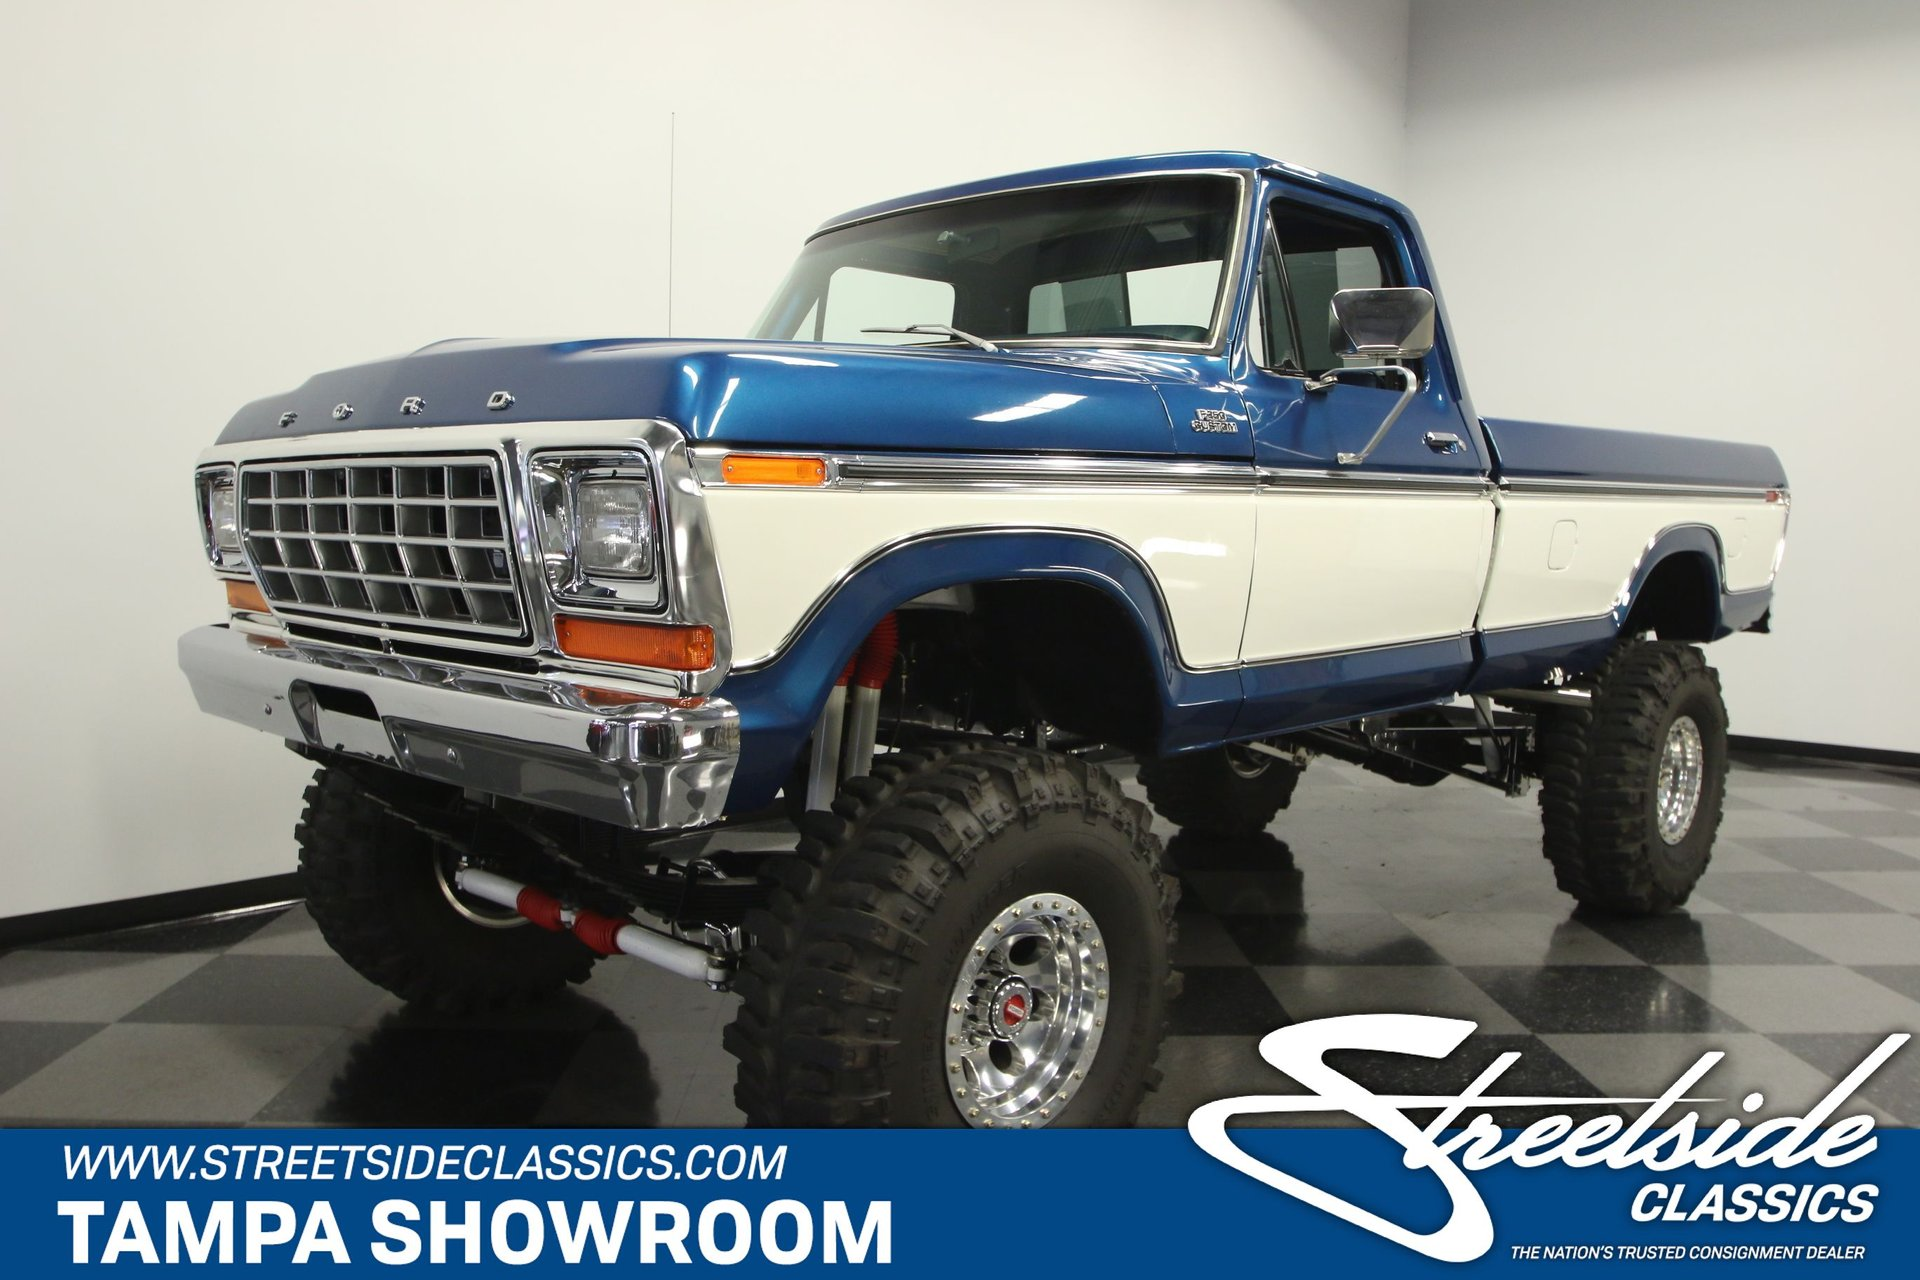 1978 Ford F 250 Classic Cars For Sale Streetside Classics The Nation S 1 Consignment Dealer